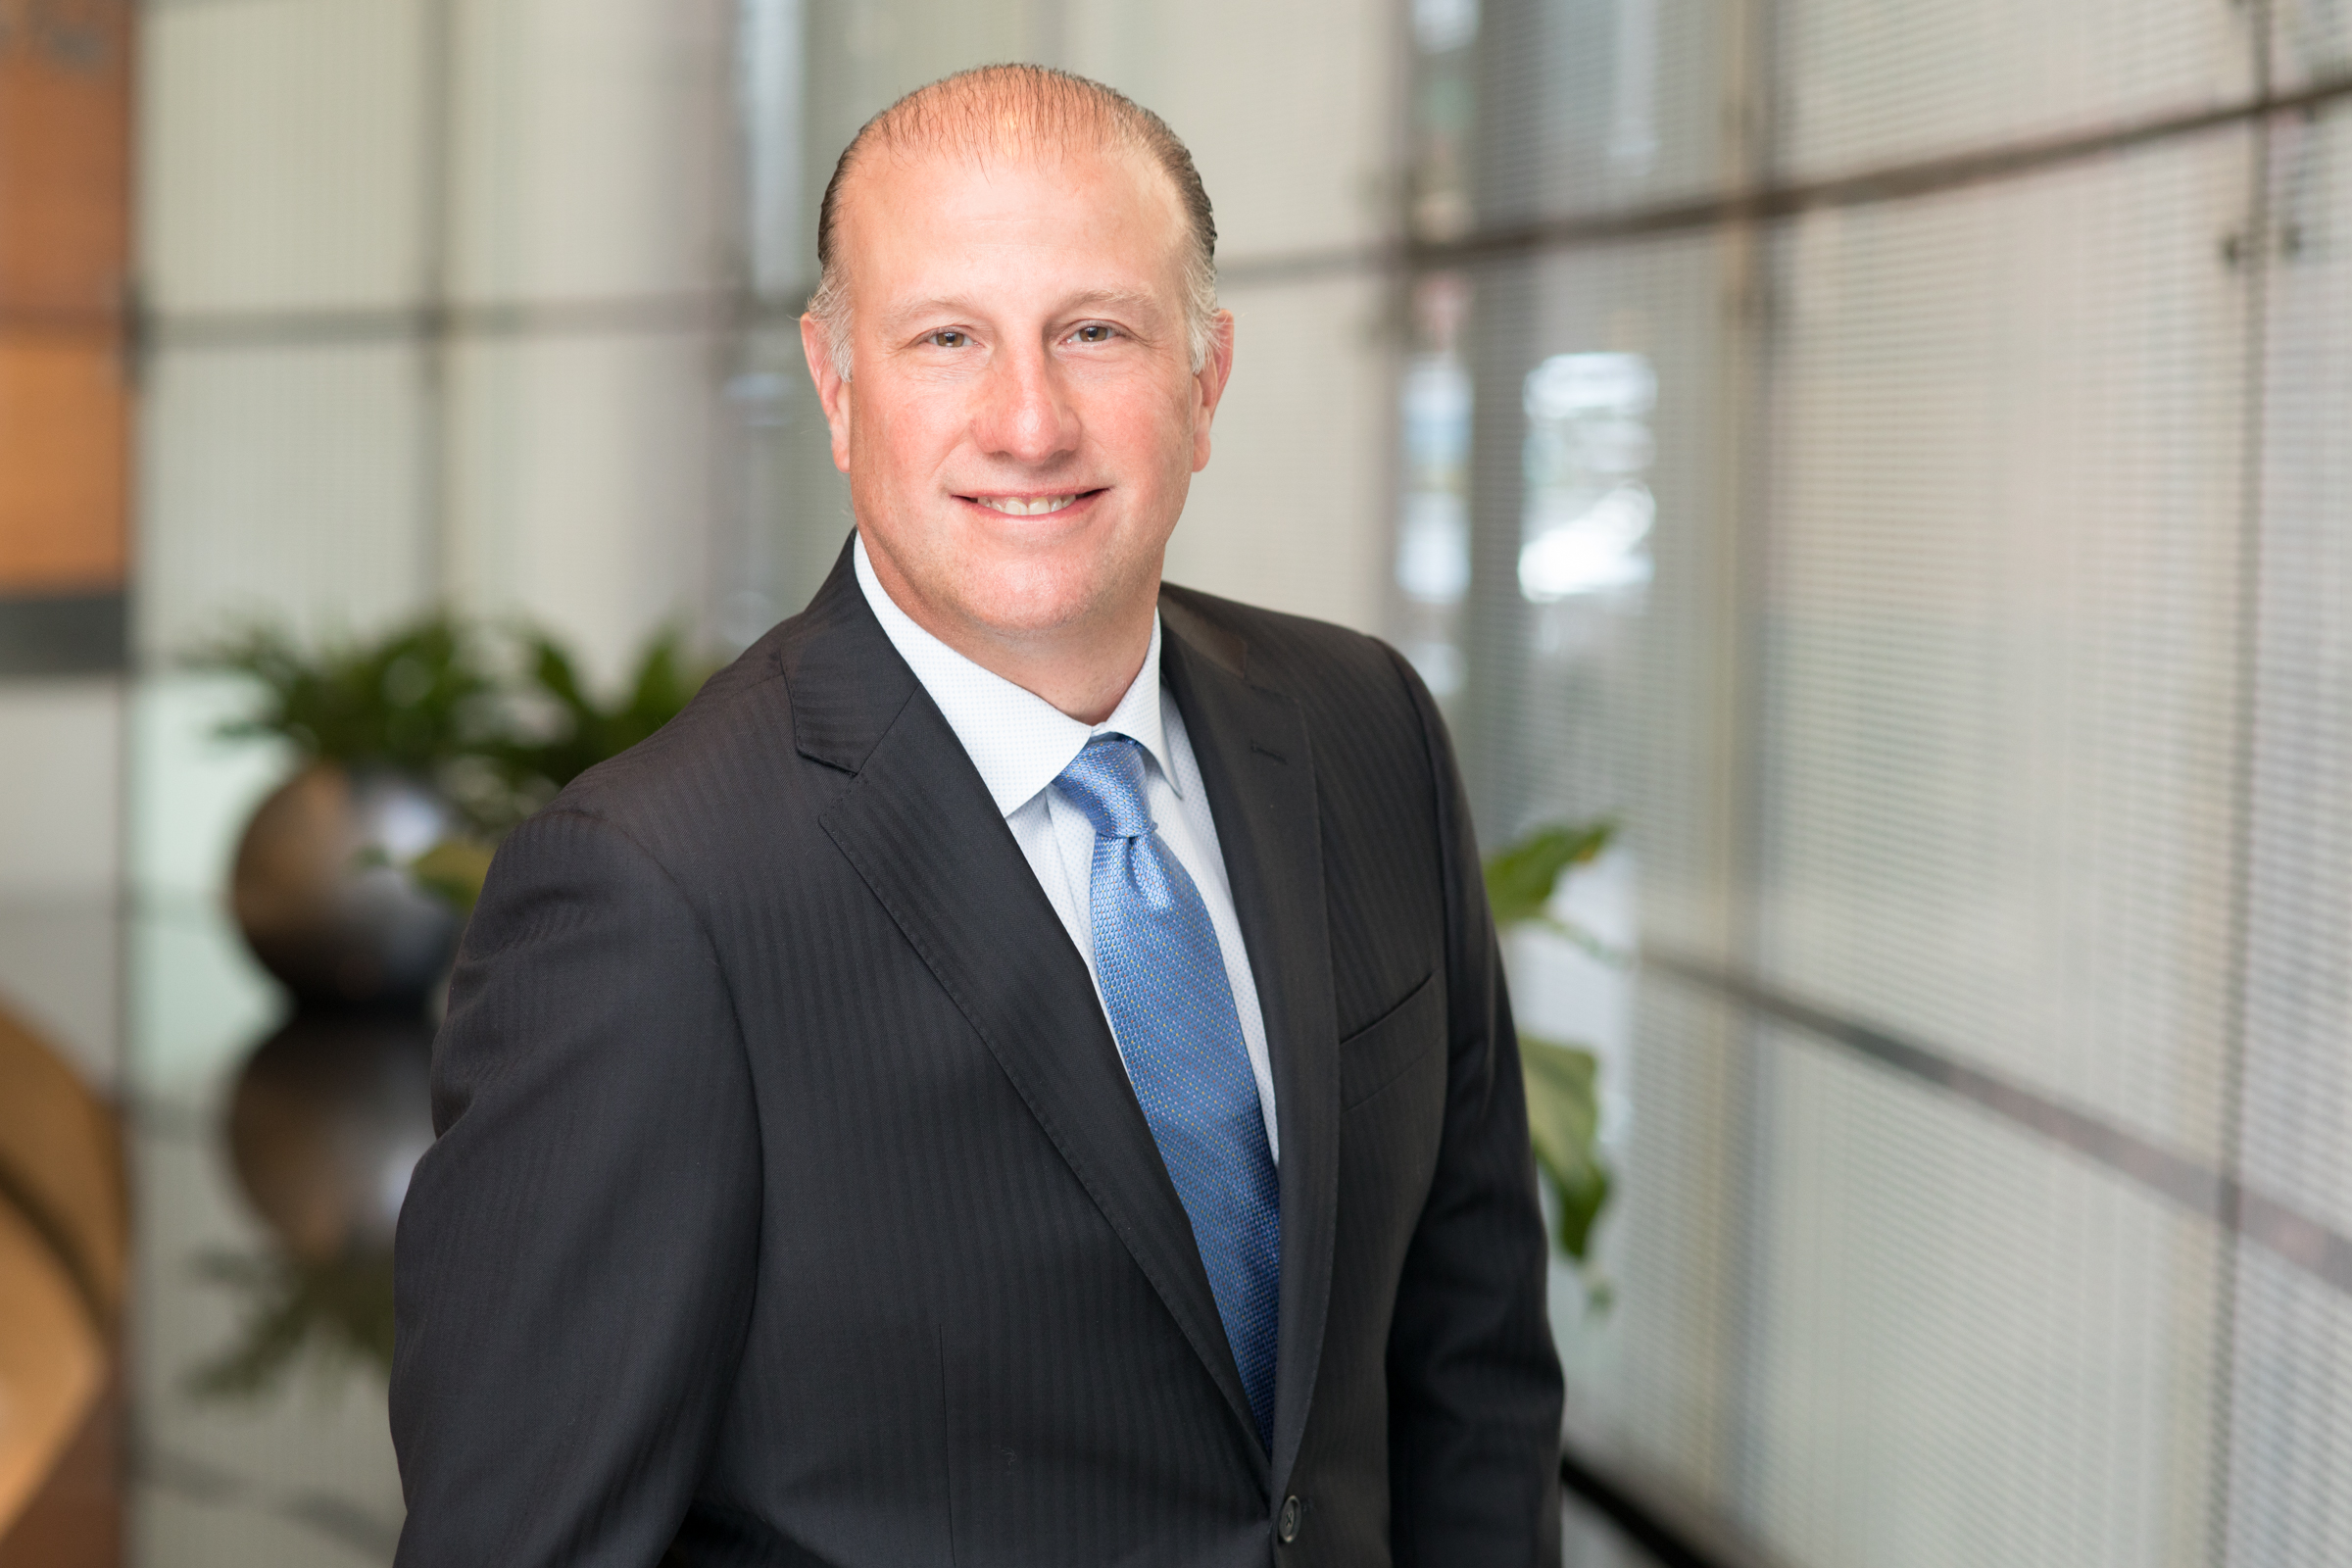 Stuart Noyes - Stuart provides clients with strategic and tactical turnaround solutions based on understanding and capitalizing on their businesses, the market, and revenue and cost opportunities. He has participated in numerous restructurings, divestitures, liquidations, mergers, and acquisitions.